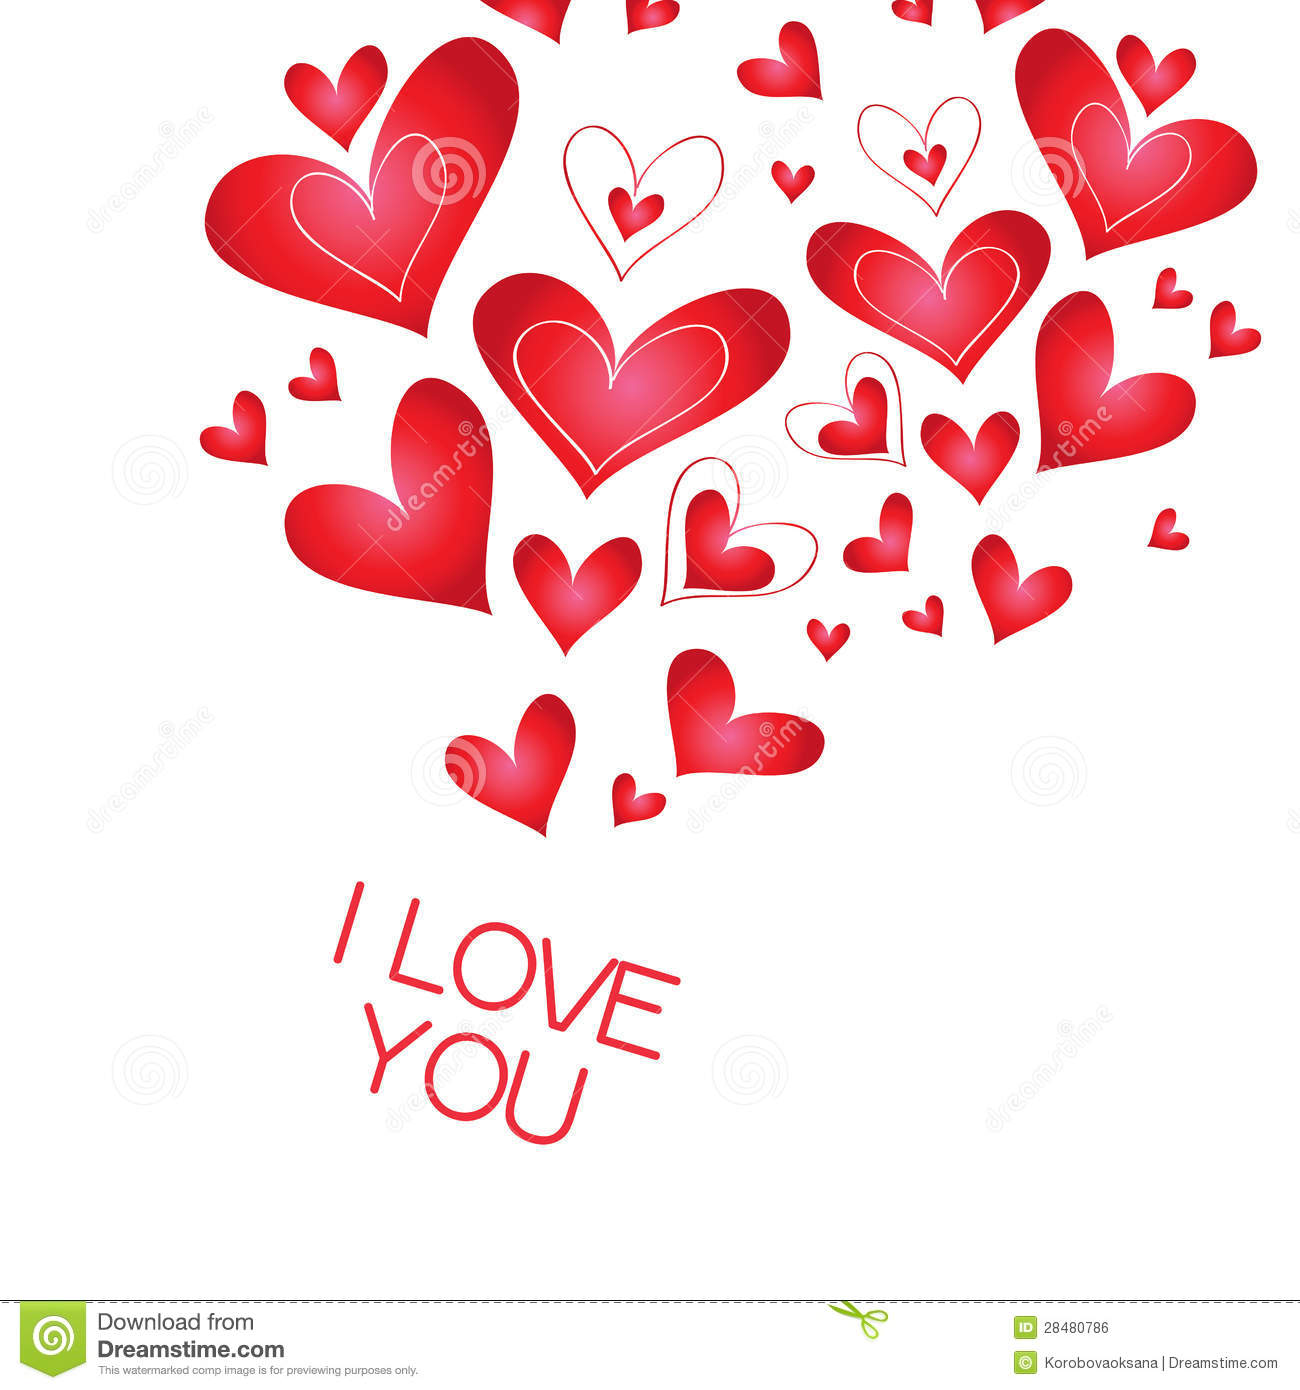 Heart I Love You Pictures